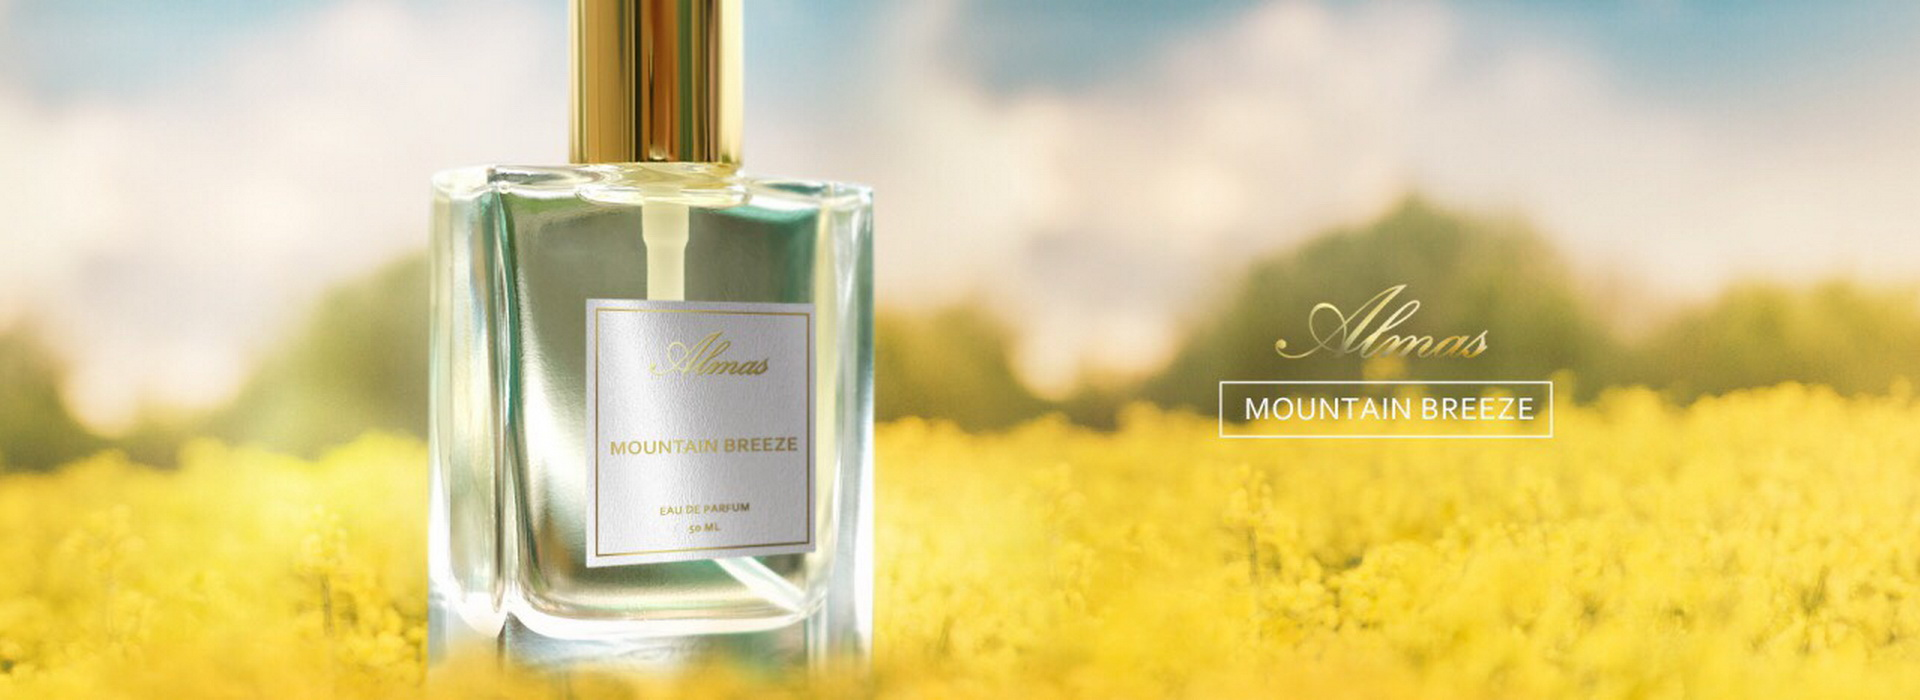 Moutain Breeze